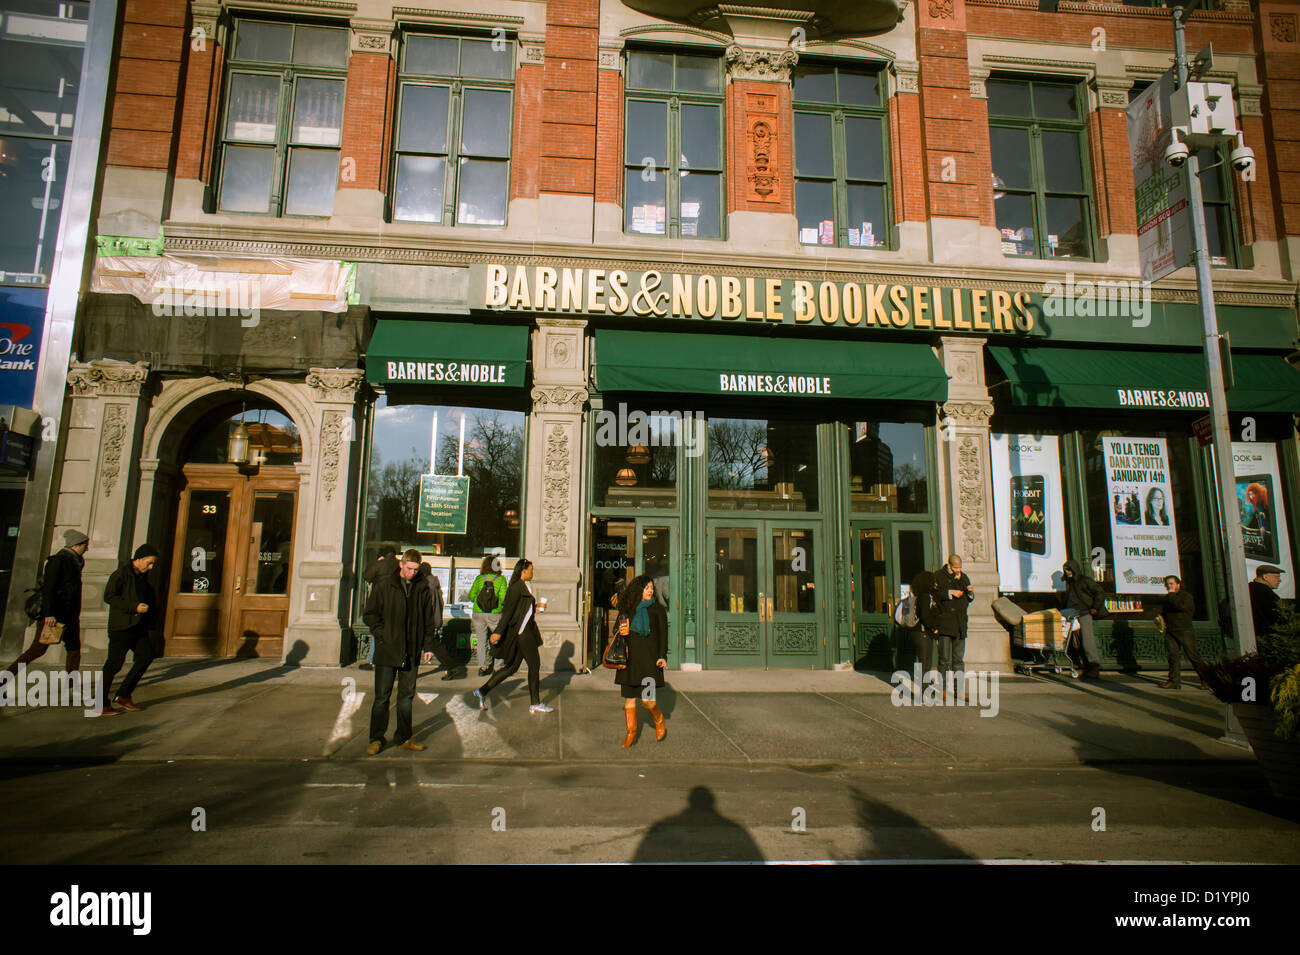 Barnes And Noble Bookstore Stock Photos & Barnes And Noble Bookstore ...